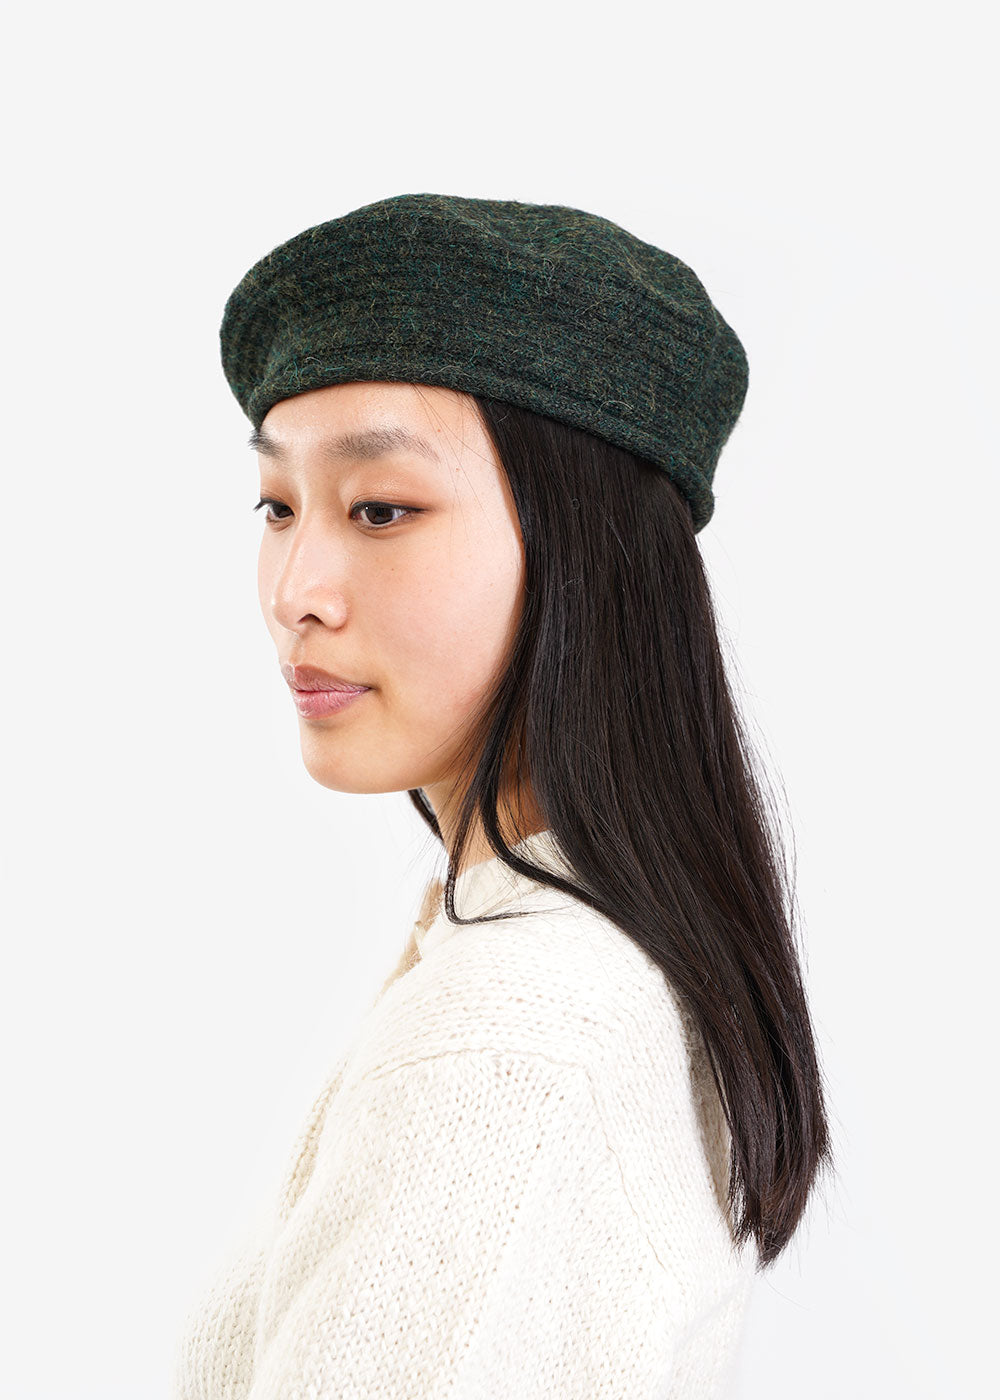 Kordal Studio Moss Beret — Shop sustainable fashion and slow fashion at New Classics Studios